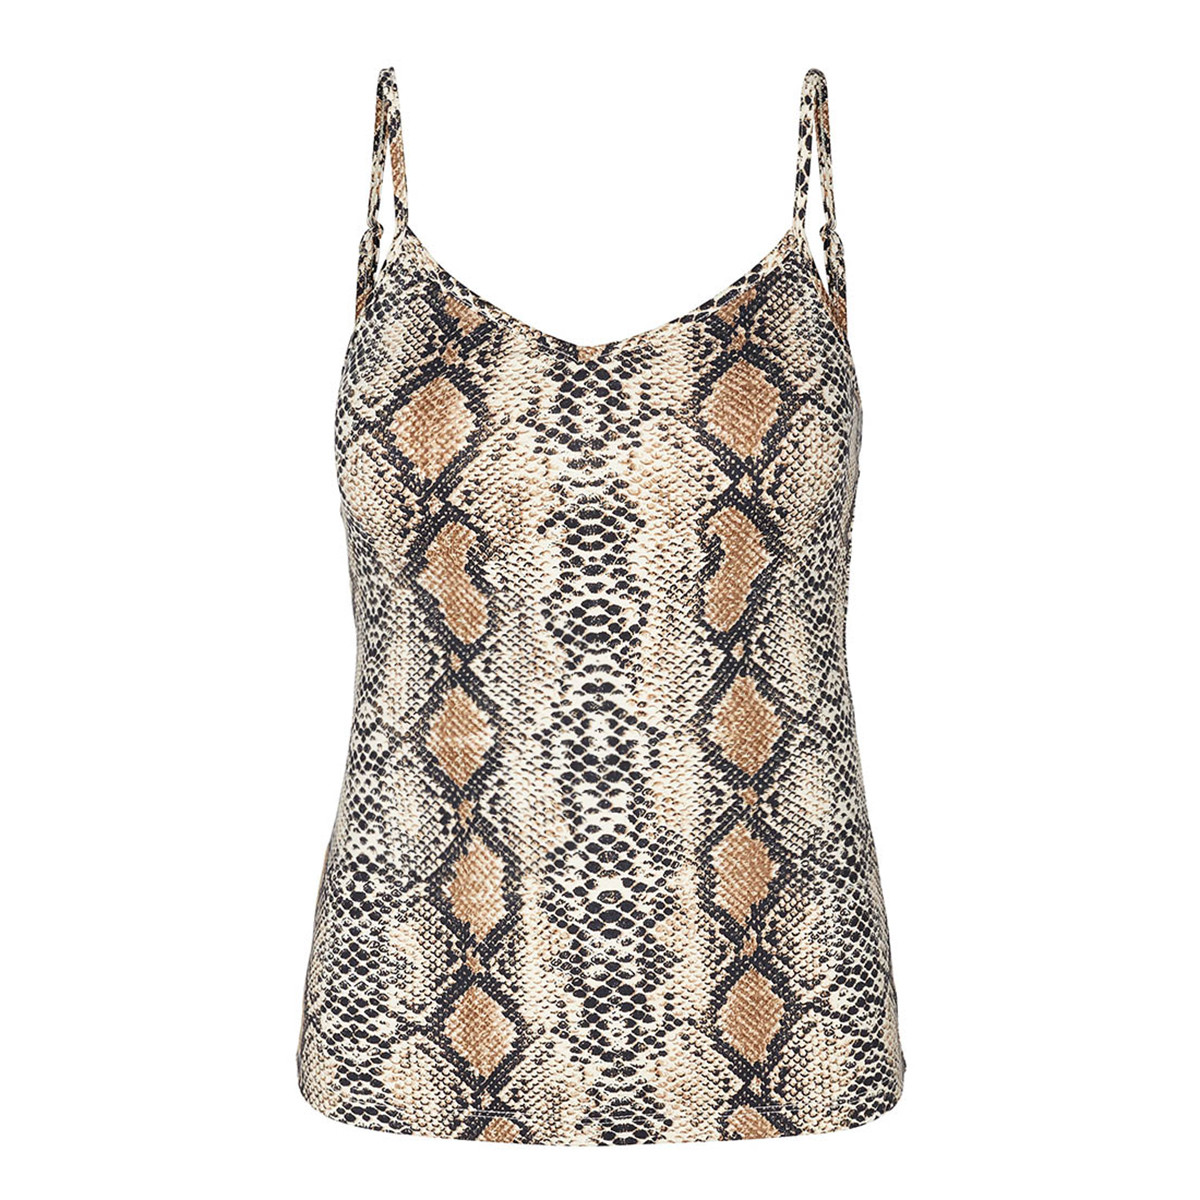 CO'COUTURE TOP - ANIMAL SINGLET SNAKE